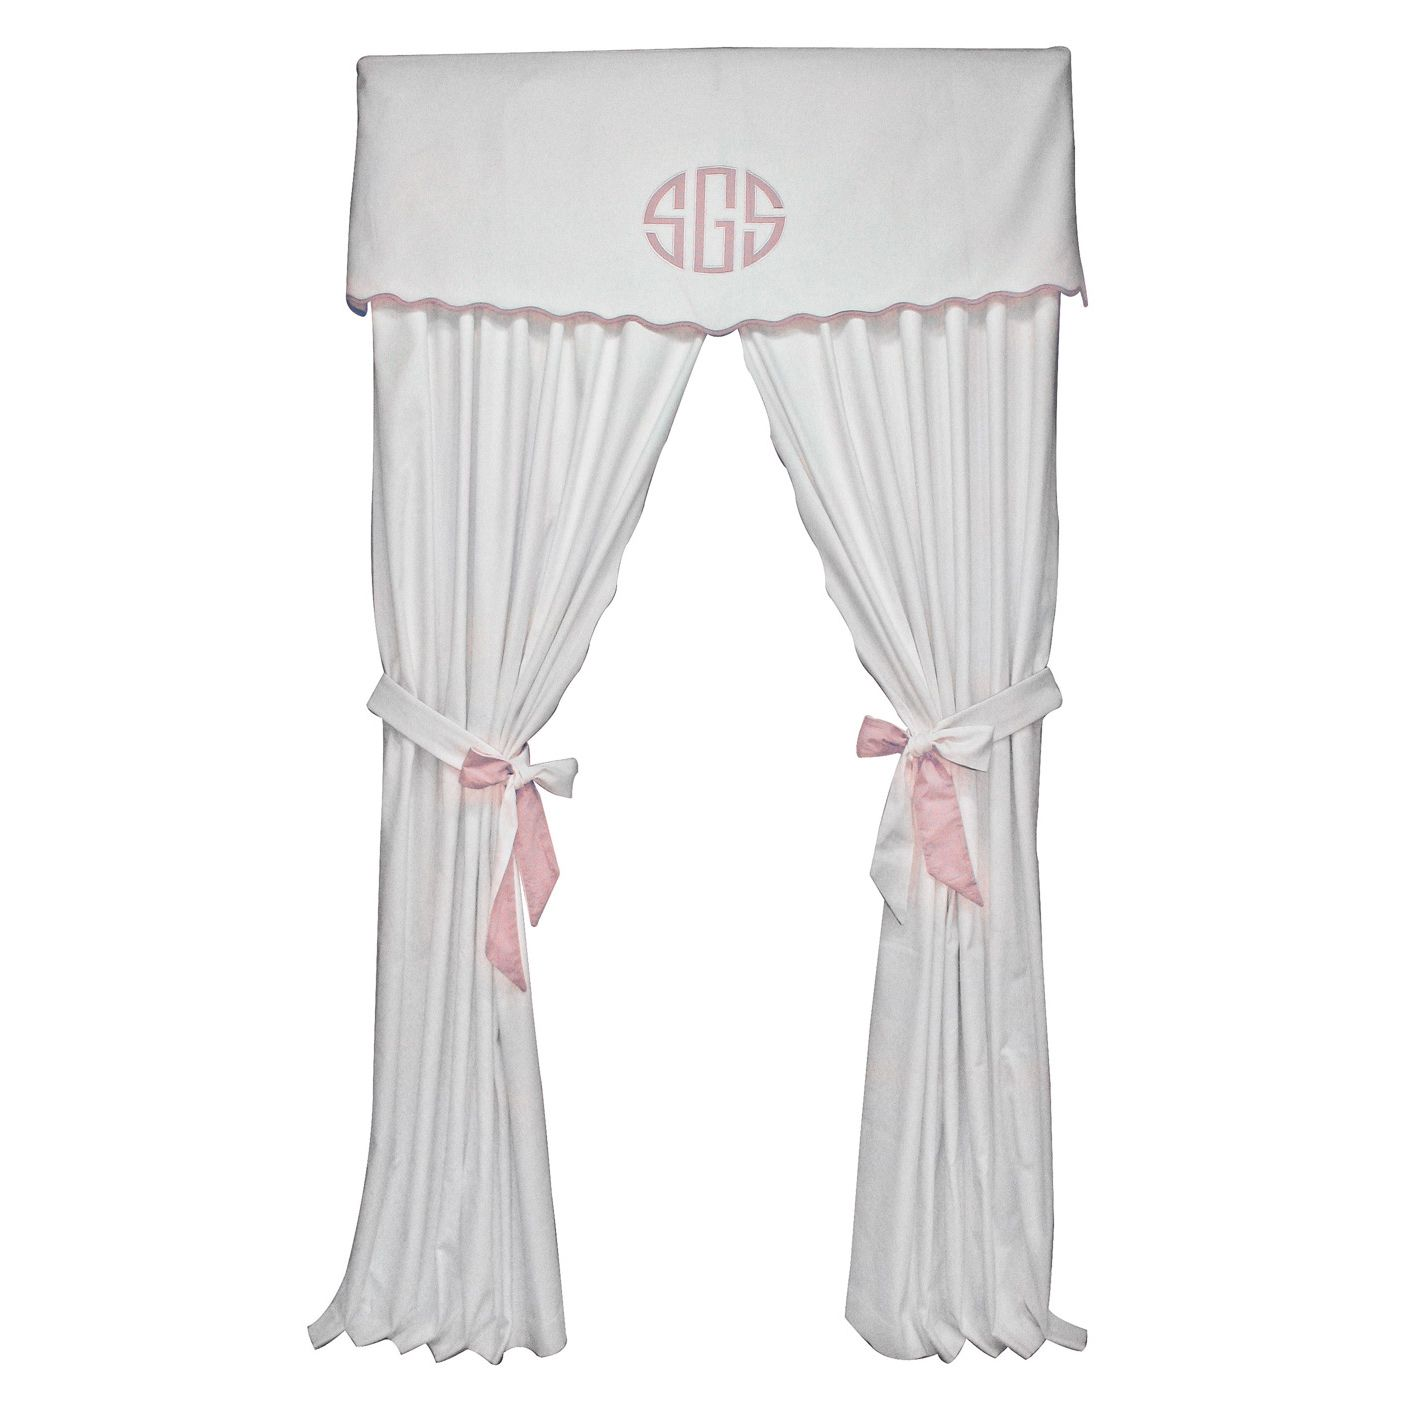 Babybeddingzone Palm Beach Pink Curtains 8 21 Closed